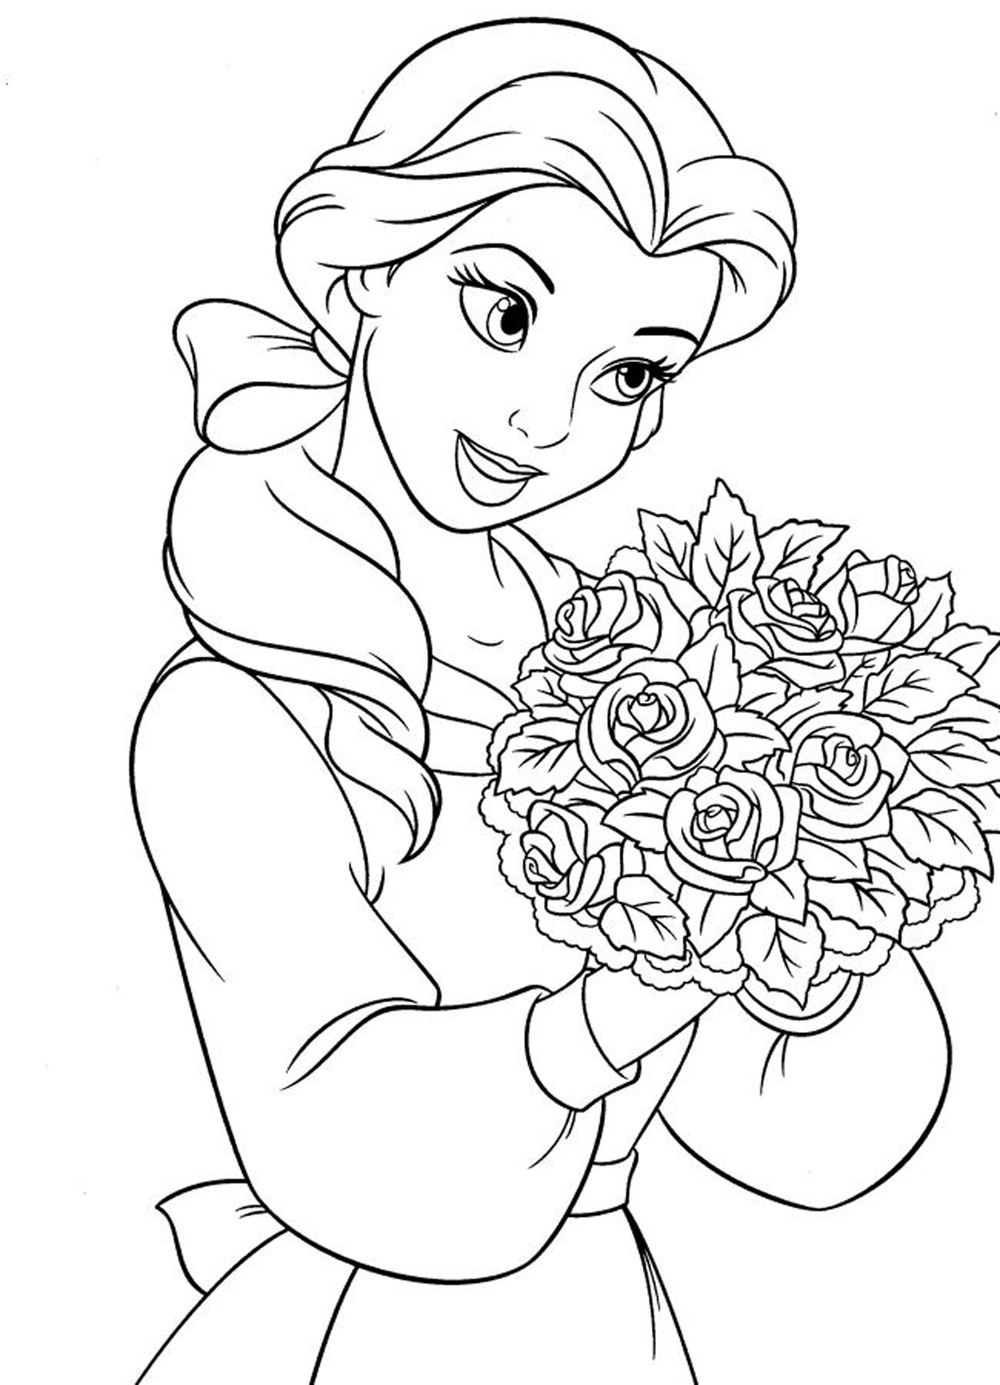 Disney coloring #7, Download drawings